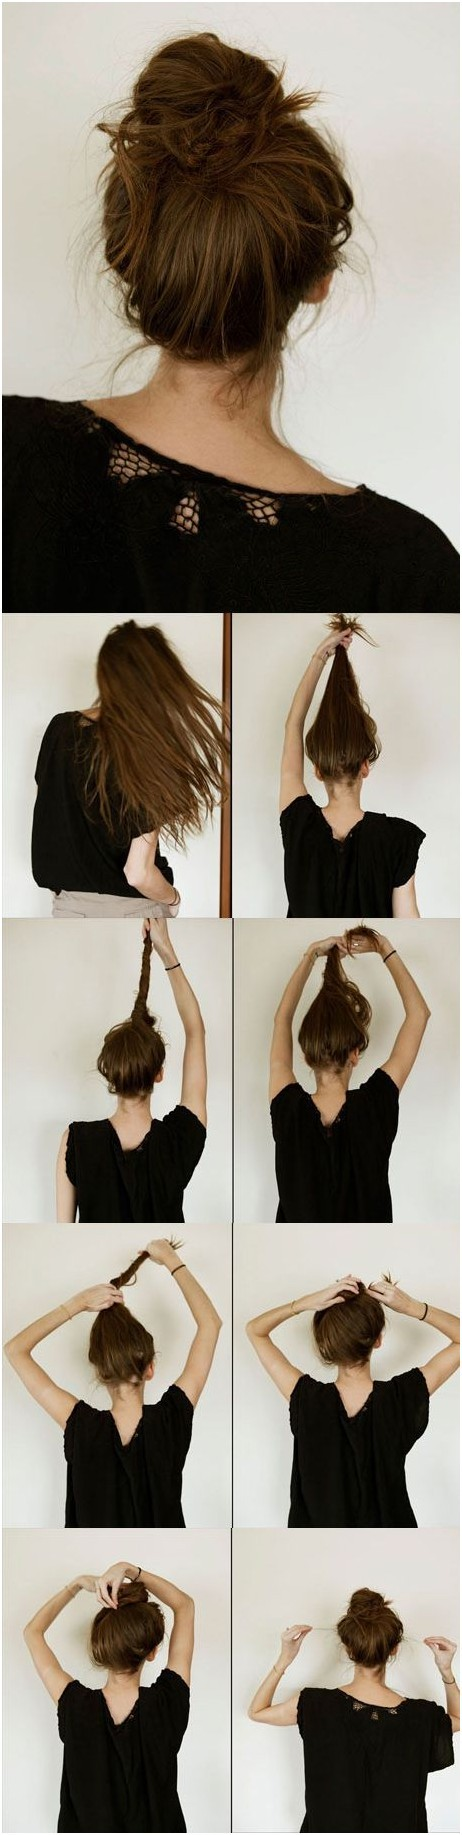 ... Bun Easy Apostolic Hairstyles Hair Video Tutorials 4 | LONG HAIRSTYLES